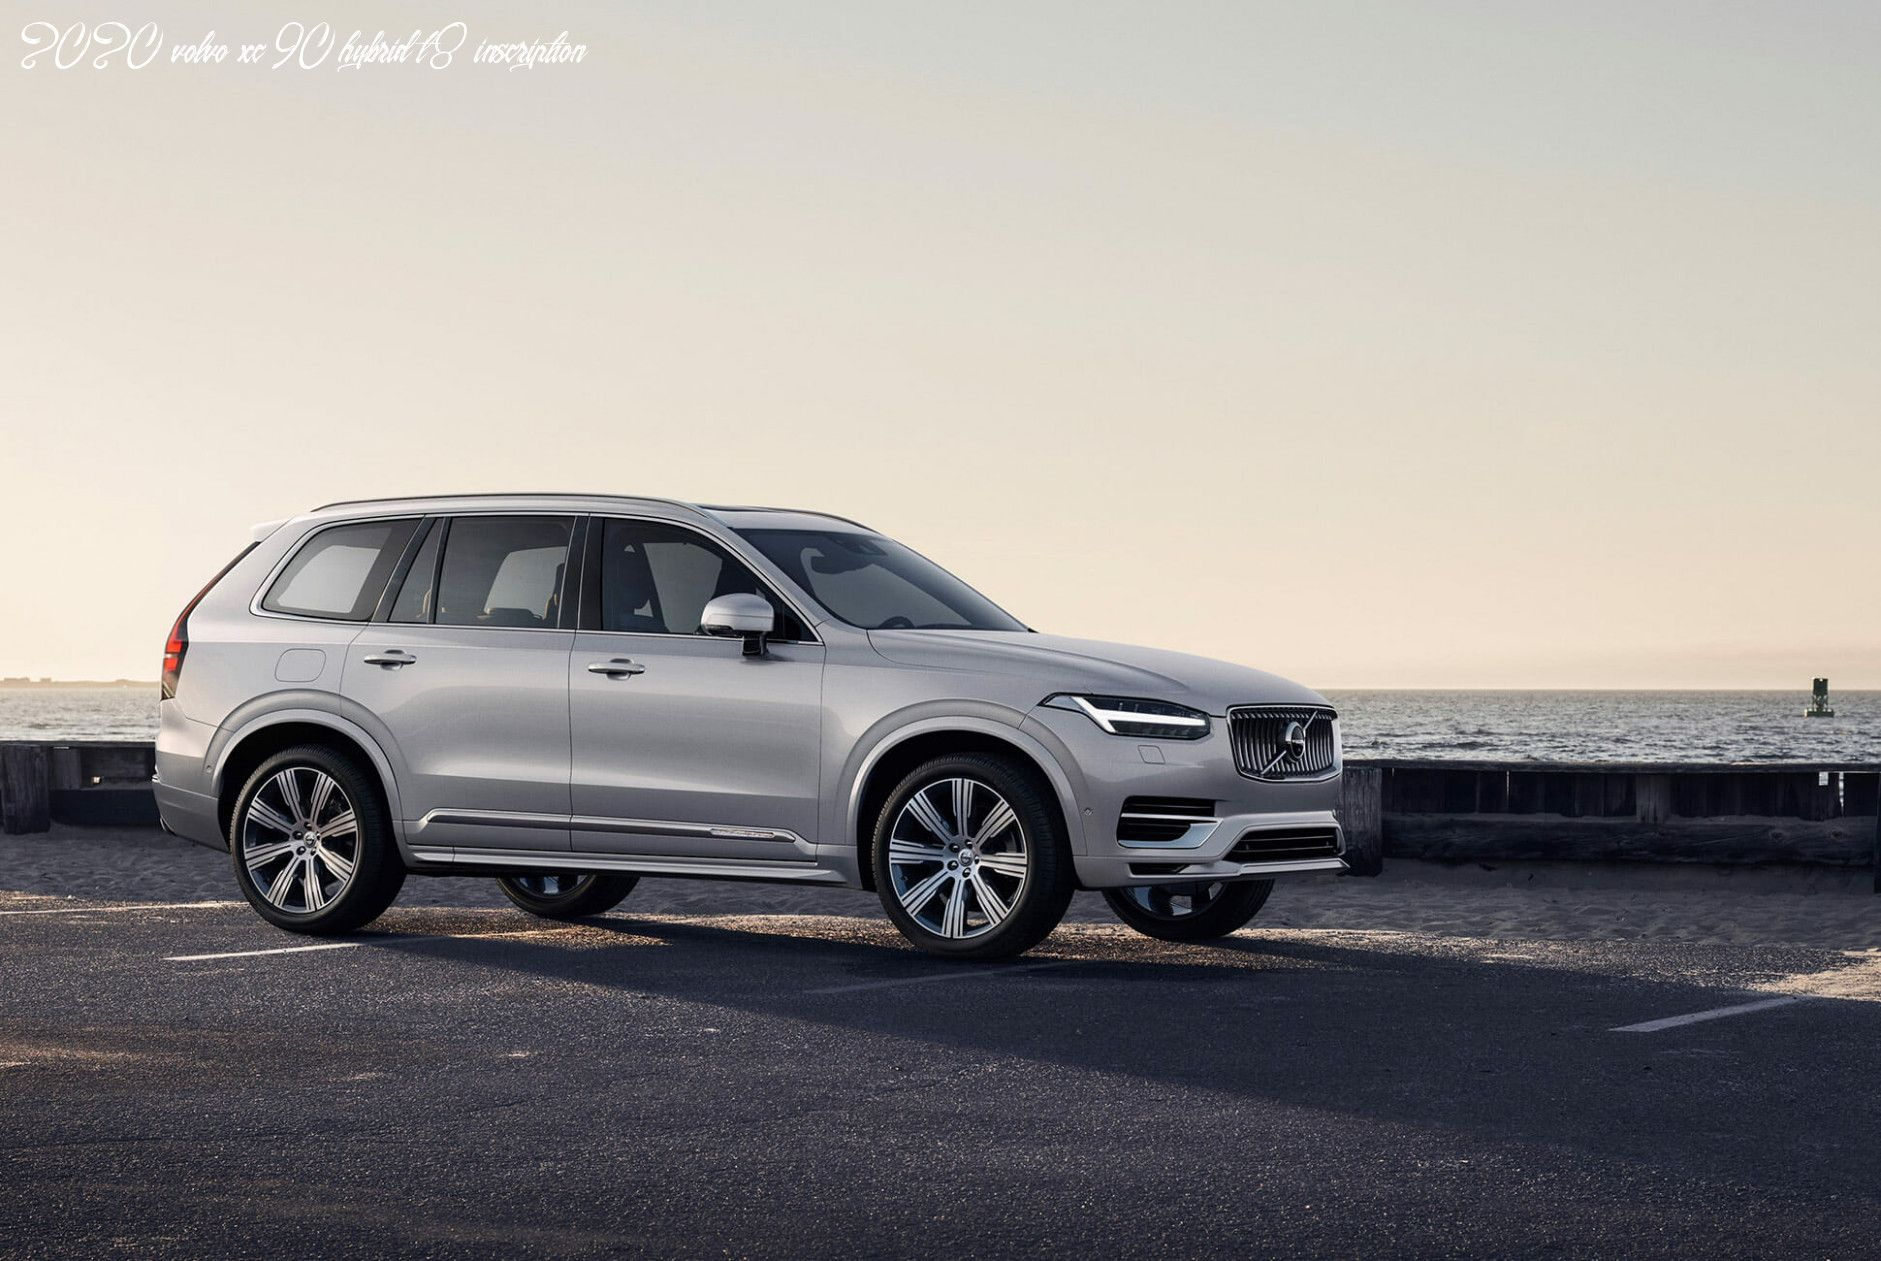 2020 Volvo Xc90 Hybrid T8 Inscription In 2020 Volvo Xc90 Volvo Volvo Suv